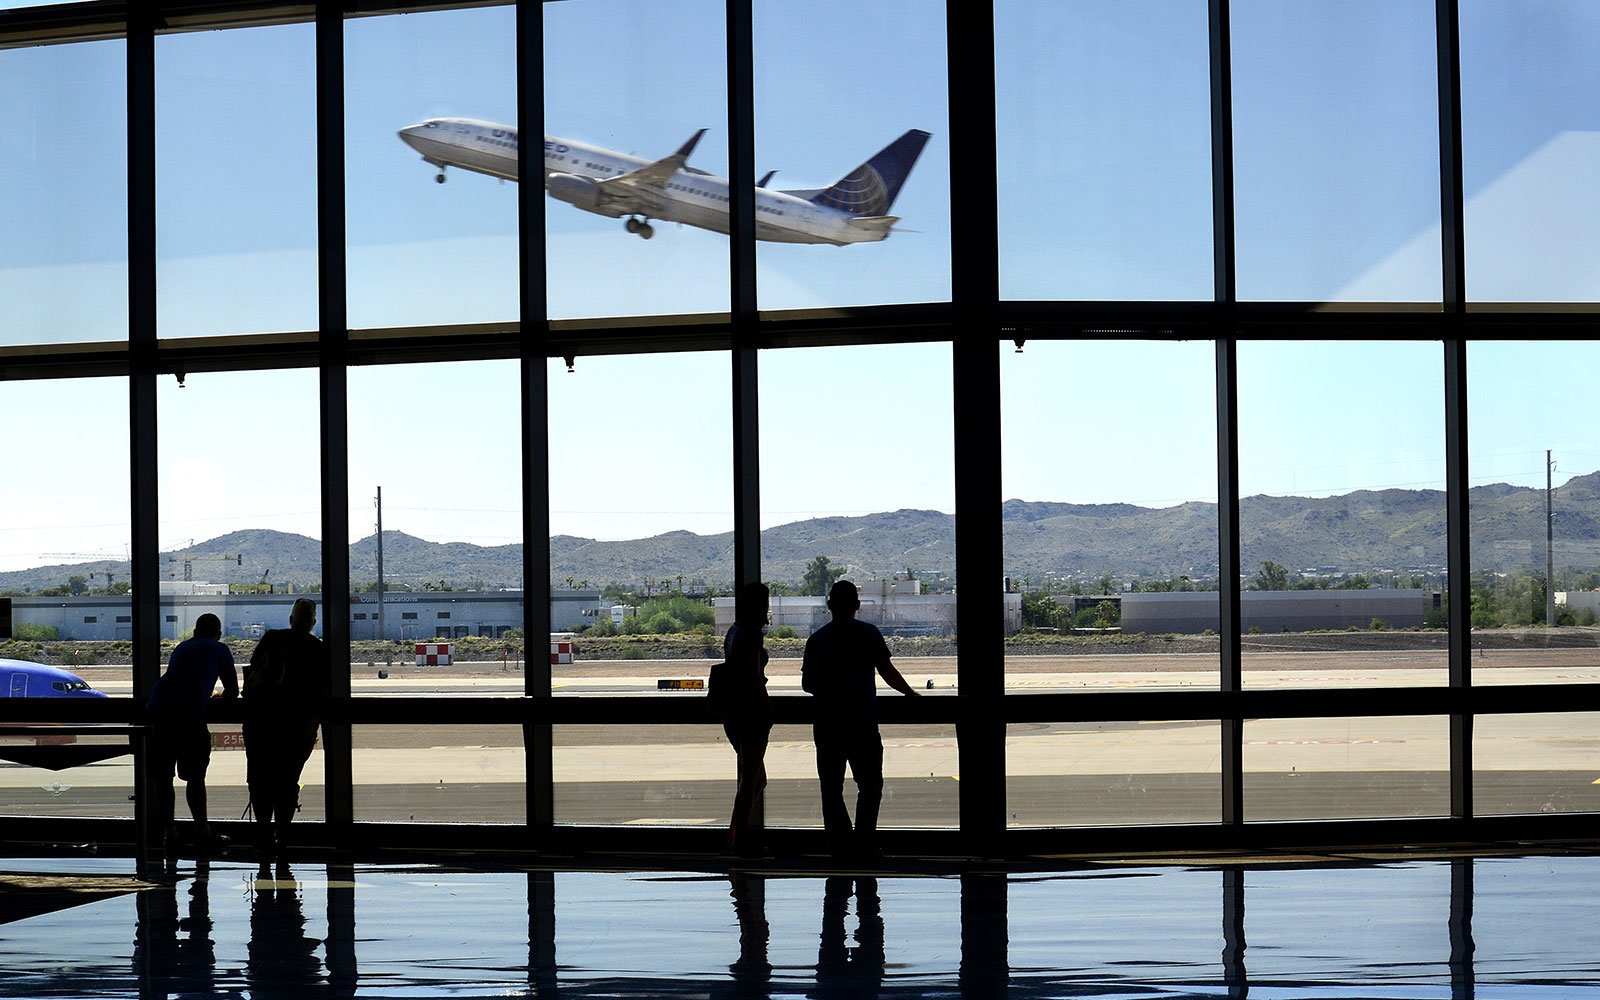 What It's Like Inside Airlines' Secret Frequent Flier